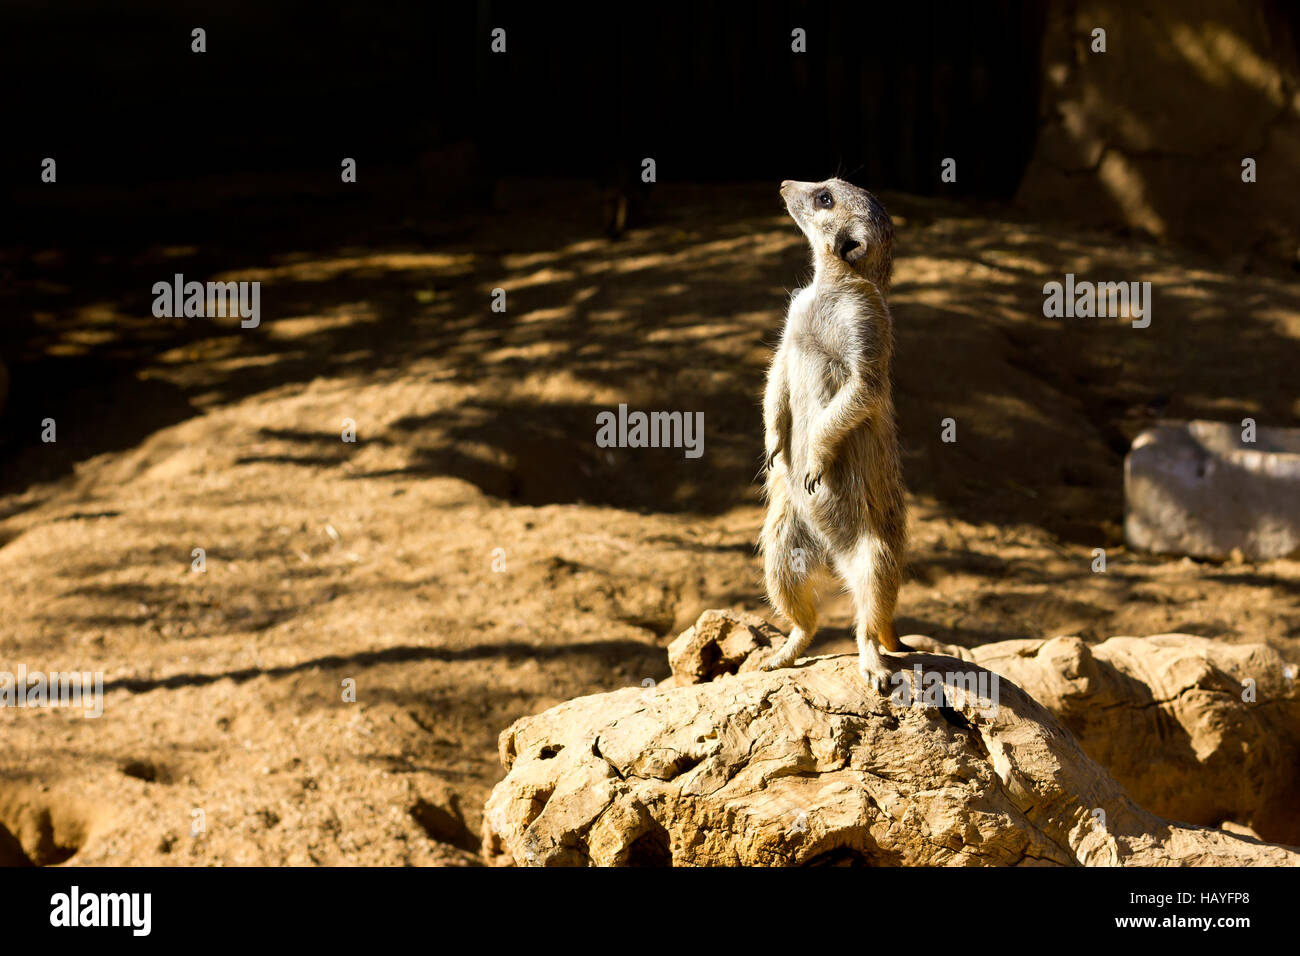 Meerkat (Suricata suricatta) on its feet. - Stock Image